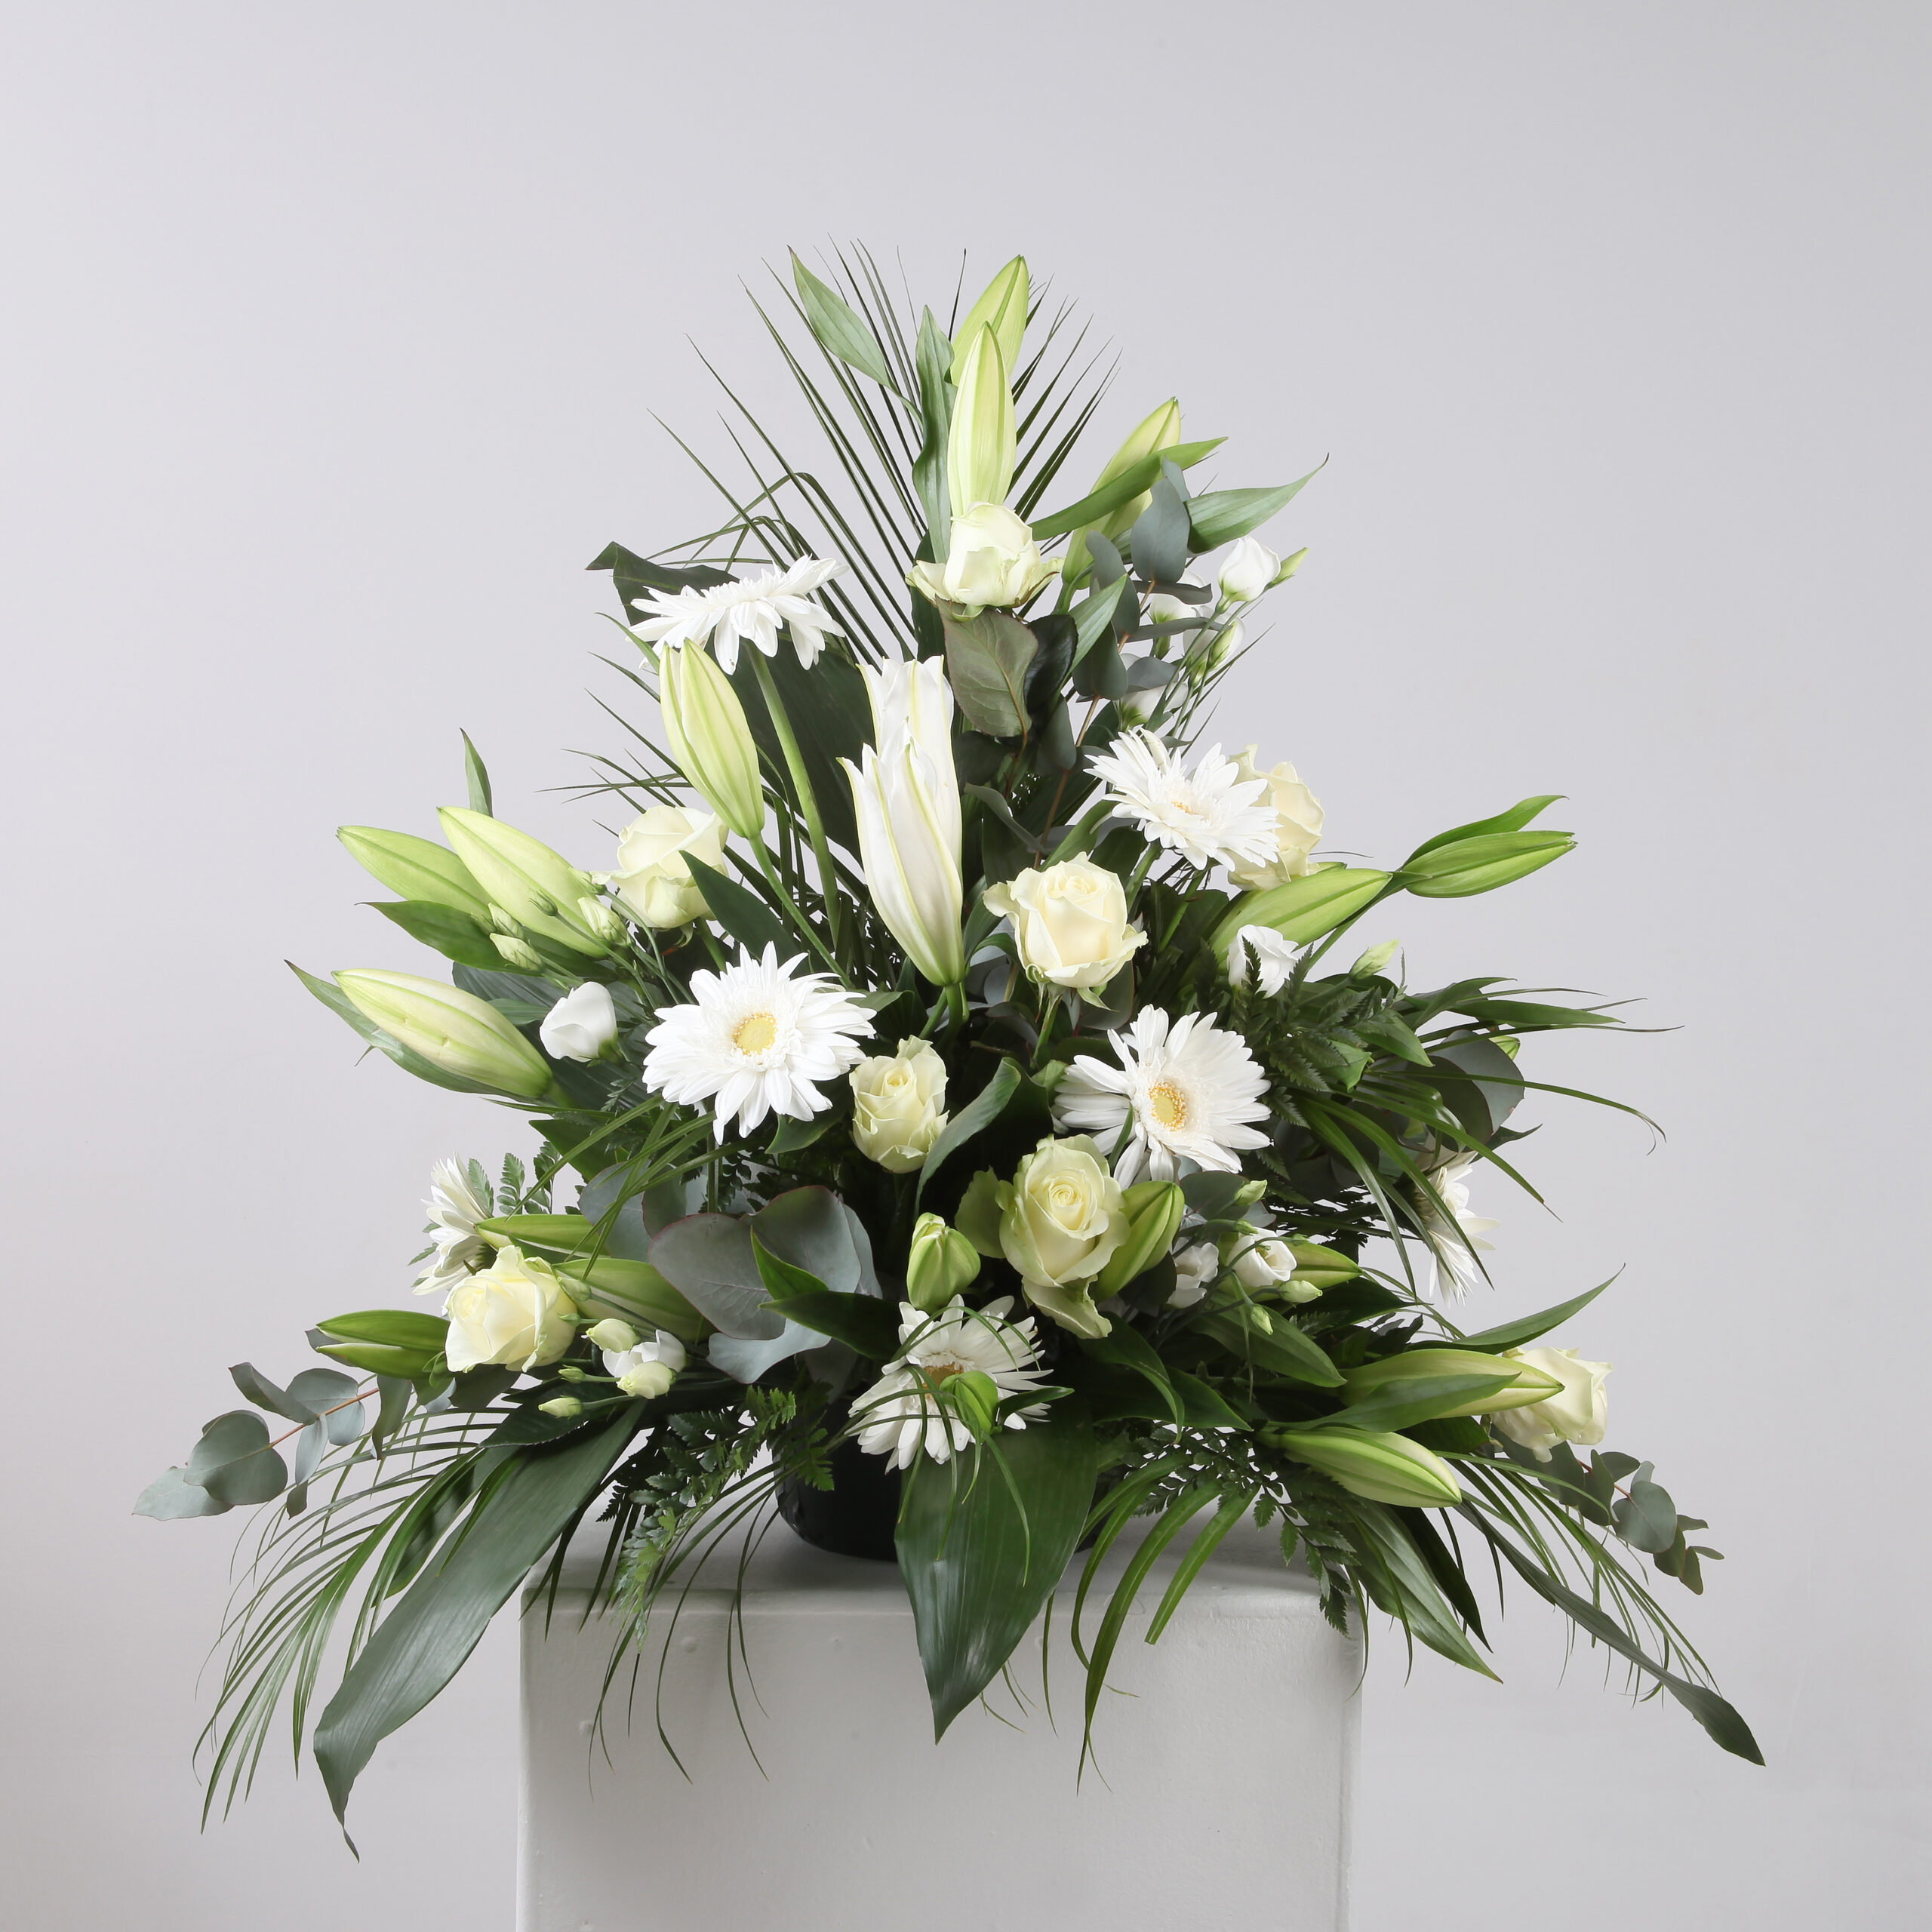 White Rose & Lily Pedestal from £50.00